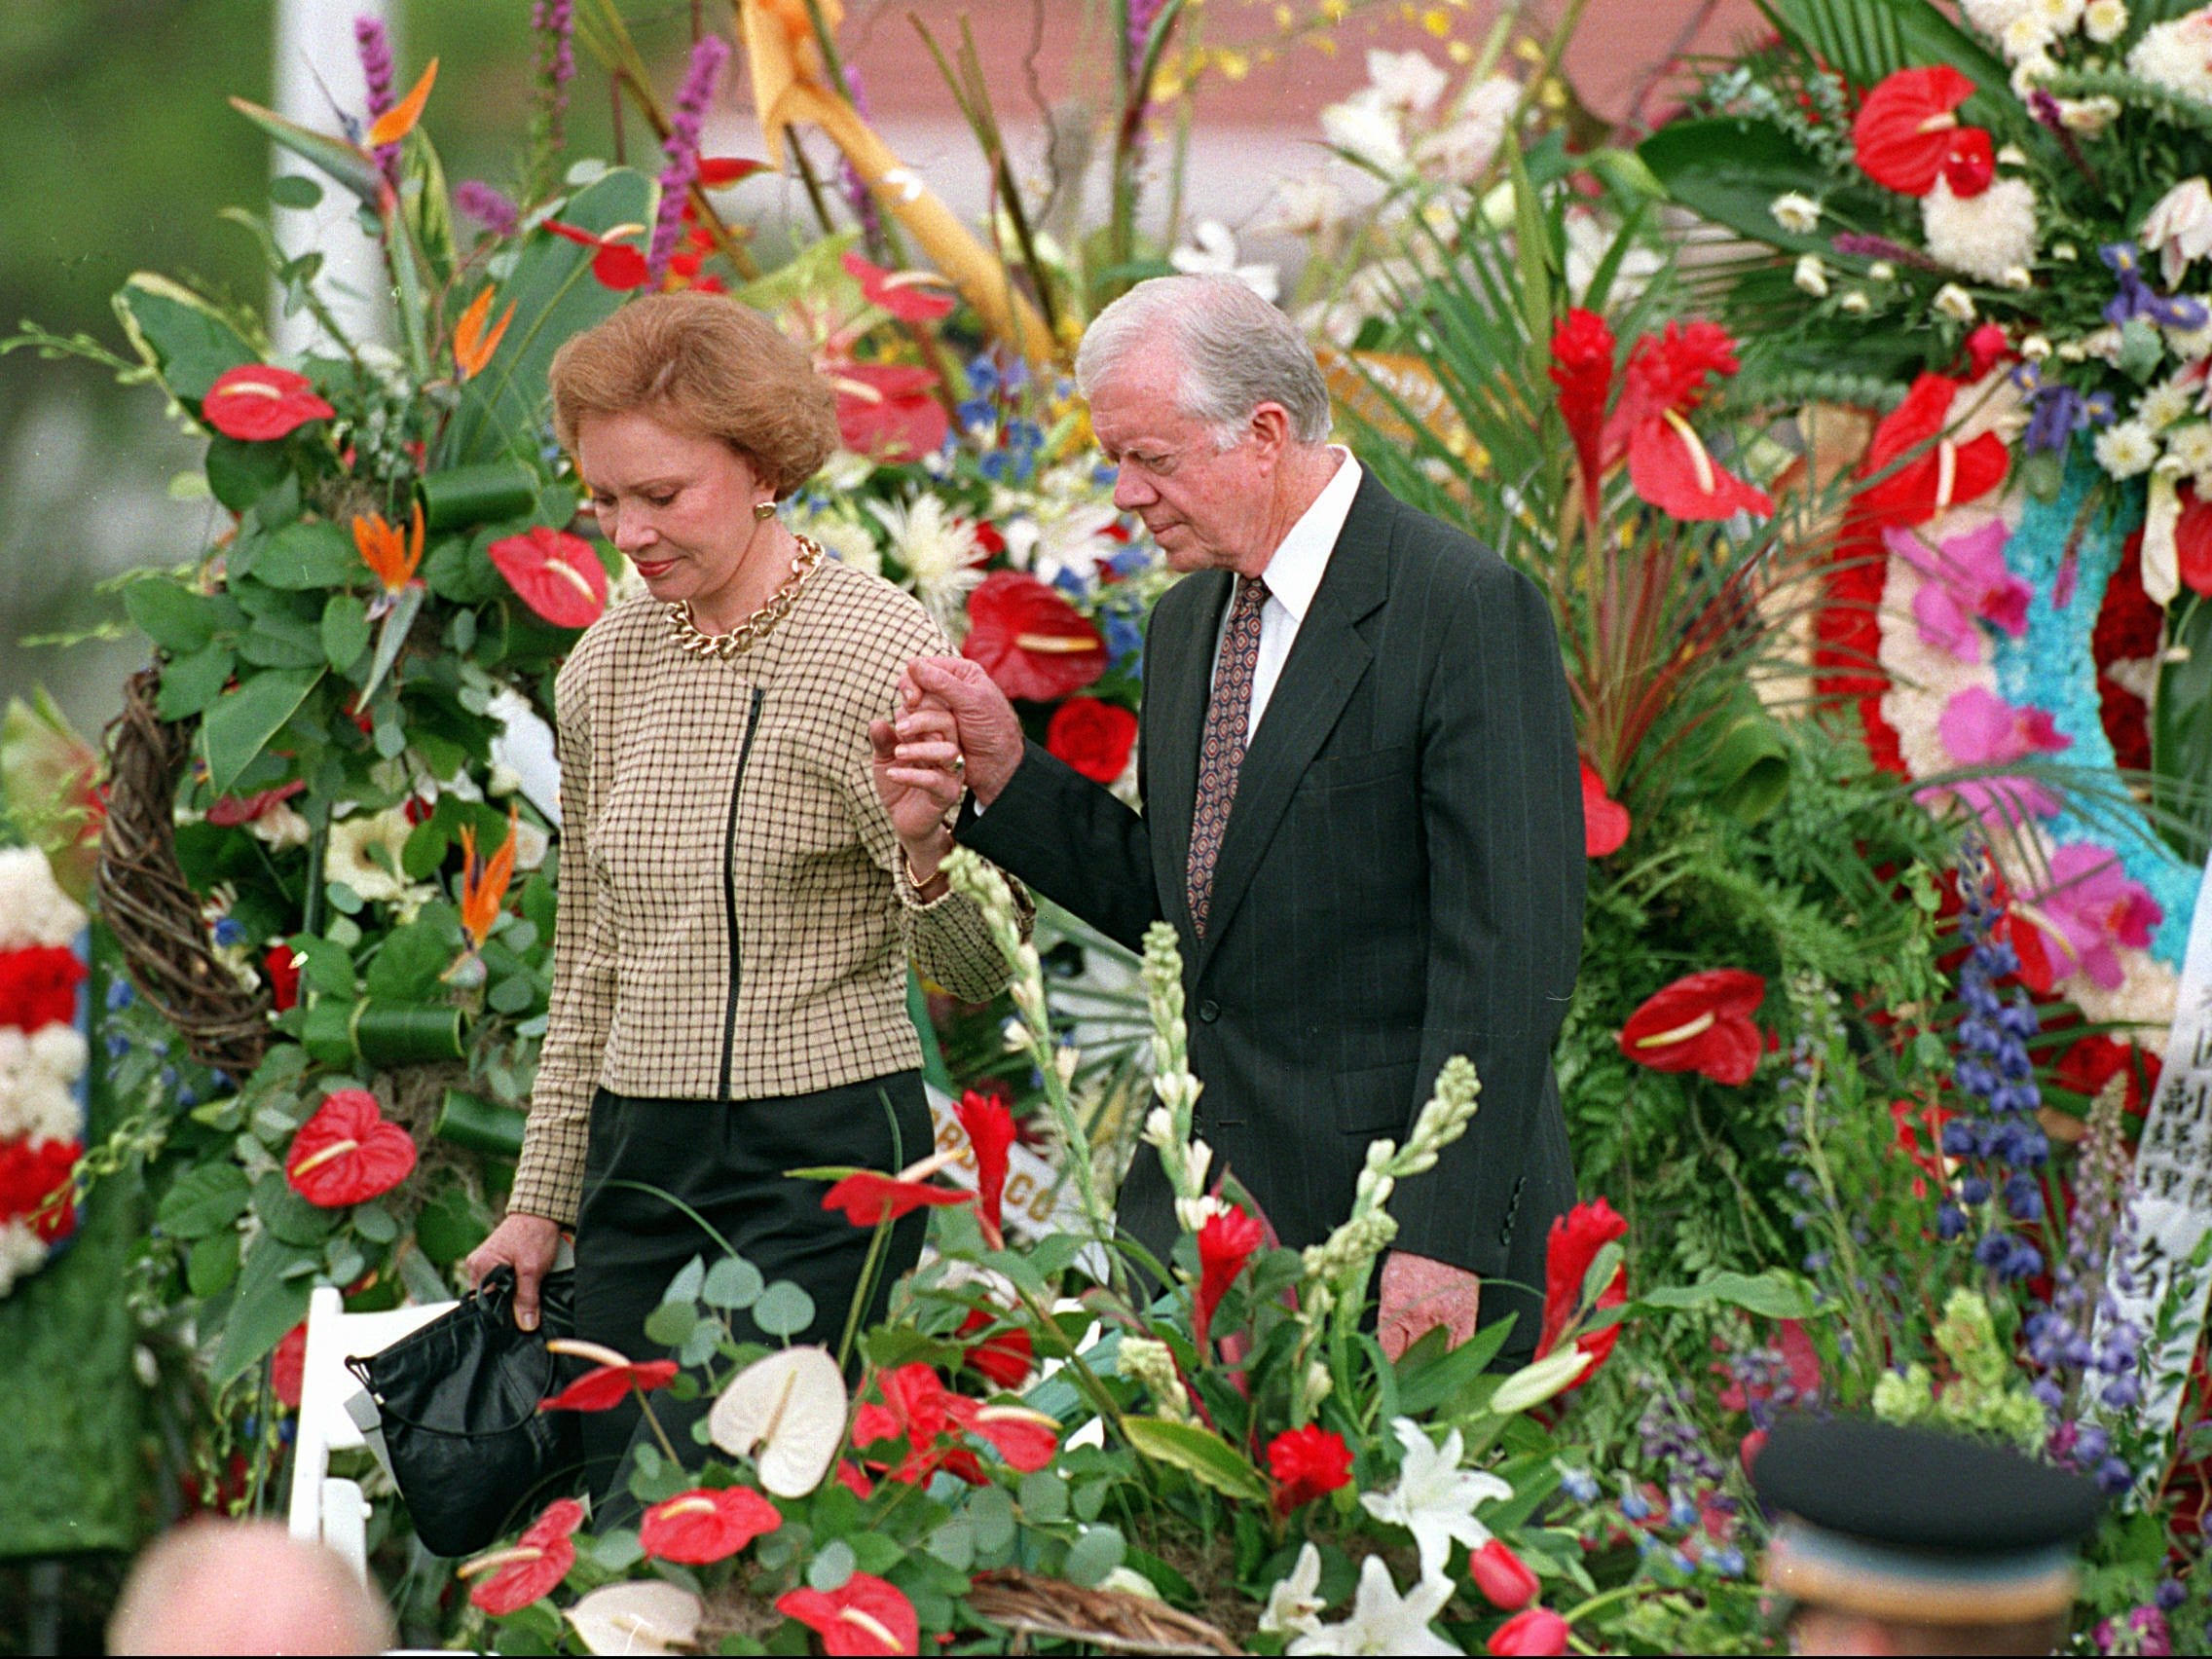 Former President Jimmy Carter and his wife Rosalynn attend the funeral of Richard Nixon, April 27, 1994, in Yorba Linda, Calif.